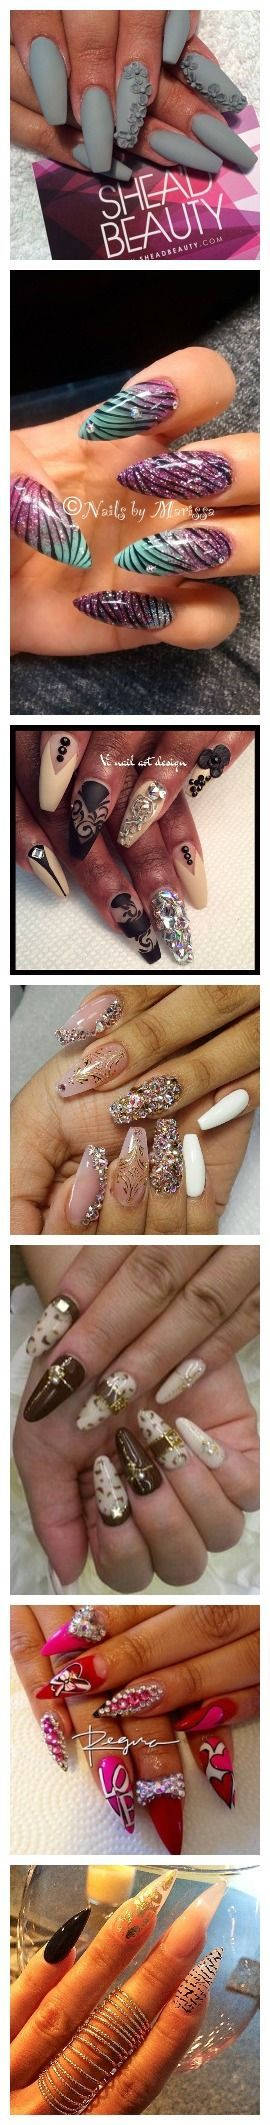 21 best dale images on Pinterest | Nail design, Gel nails and ...